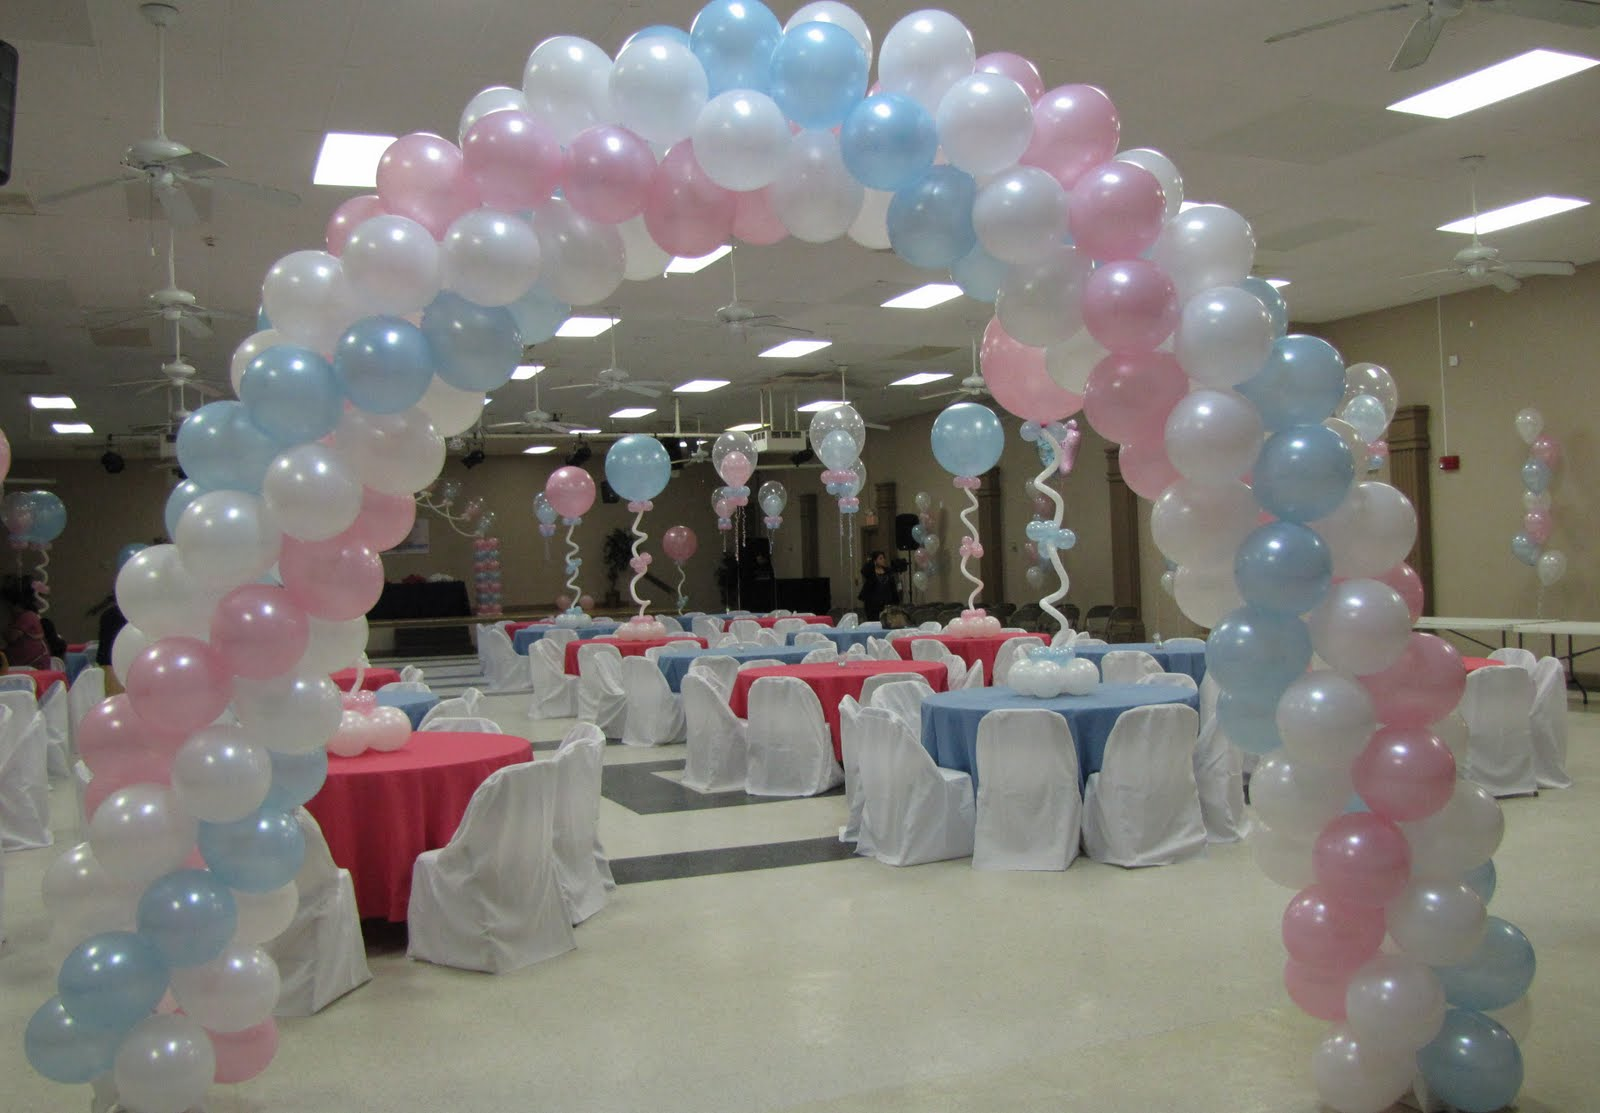 balloons decoration for baby shower party favors ideas. Black Bedroom Furniture Sets. Home Design Ideas